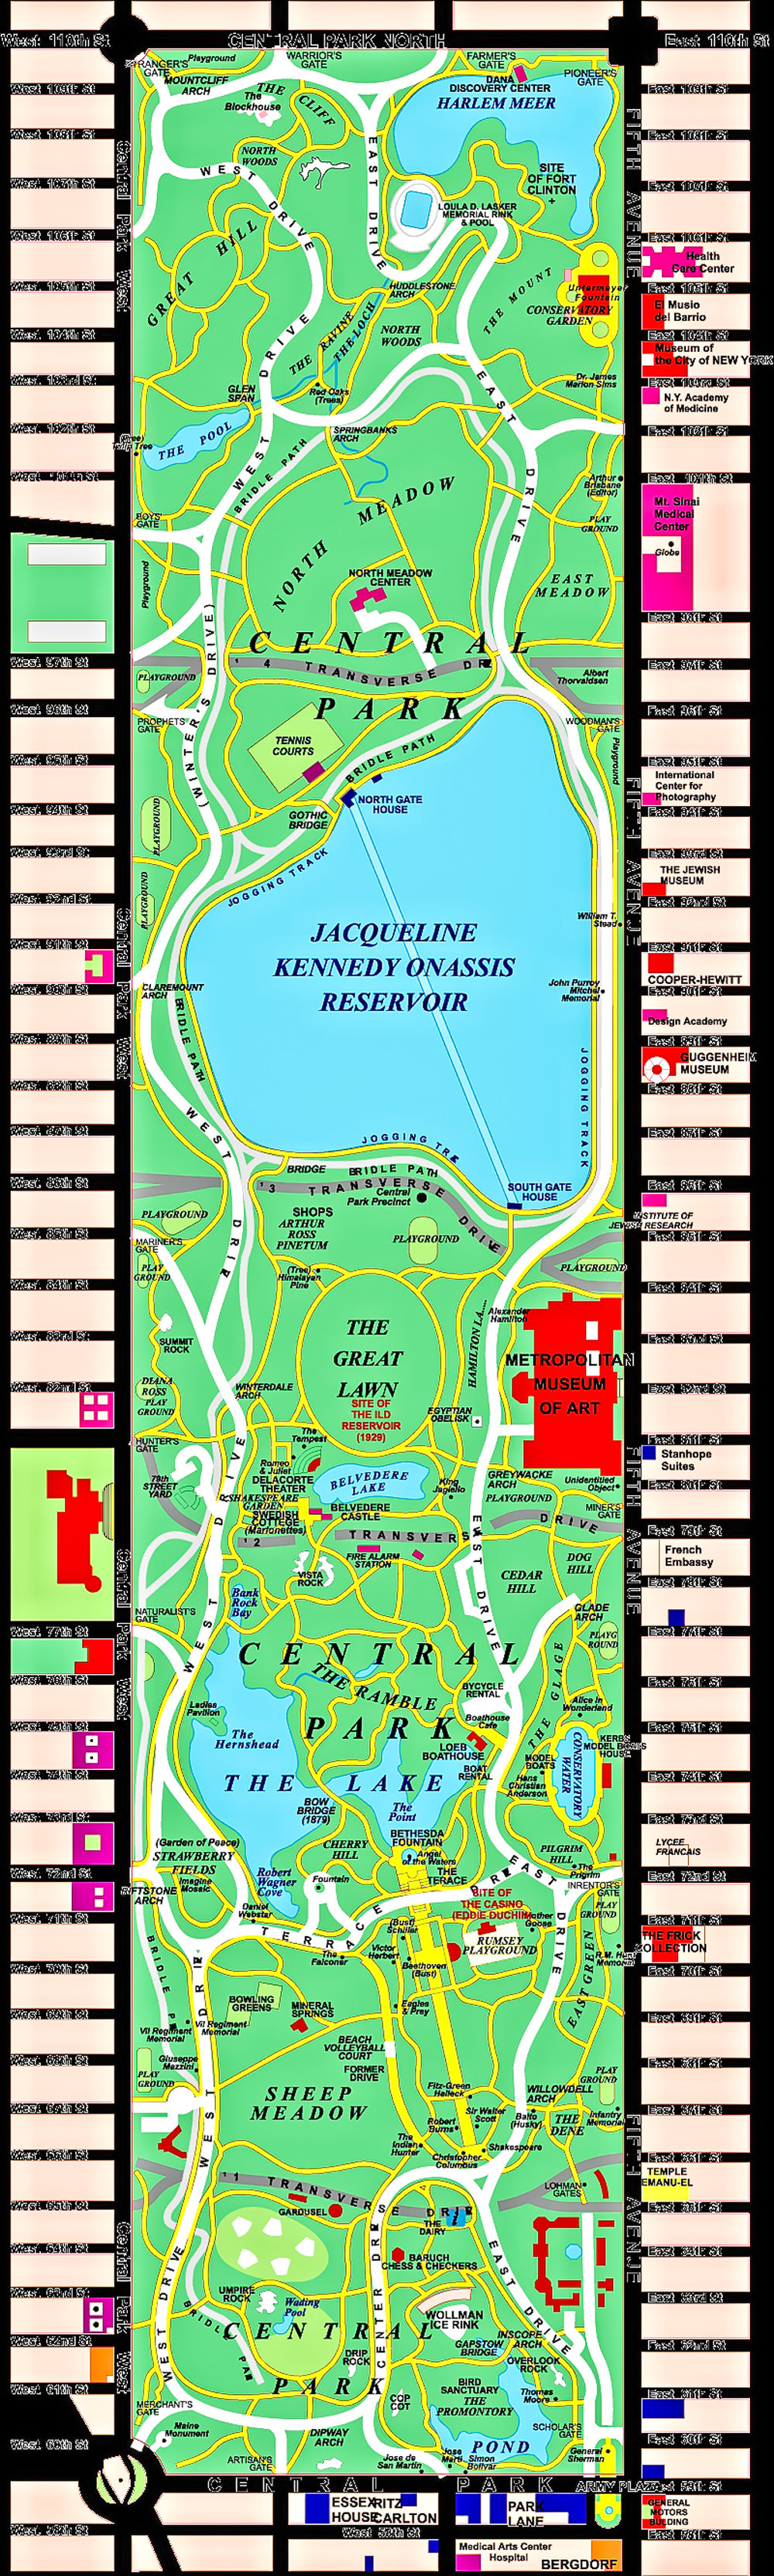 Detailed map of central park. image: central park conservancy